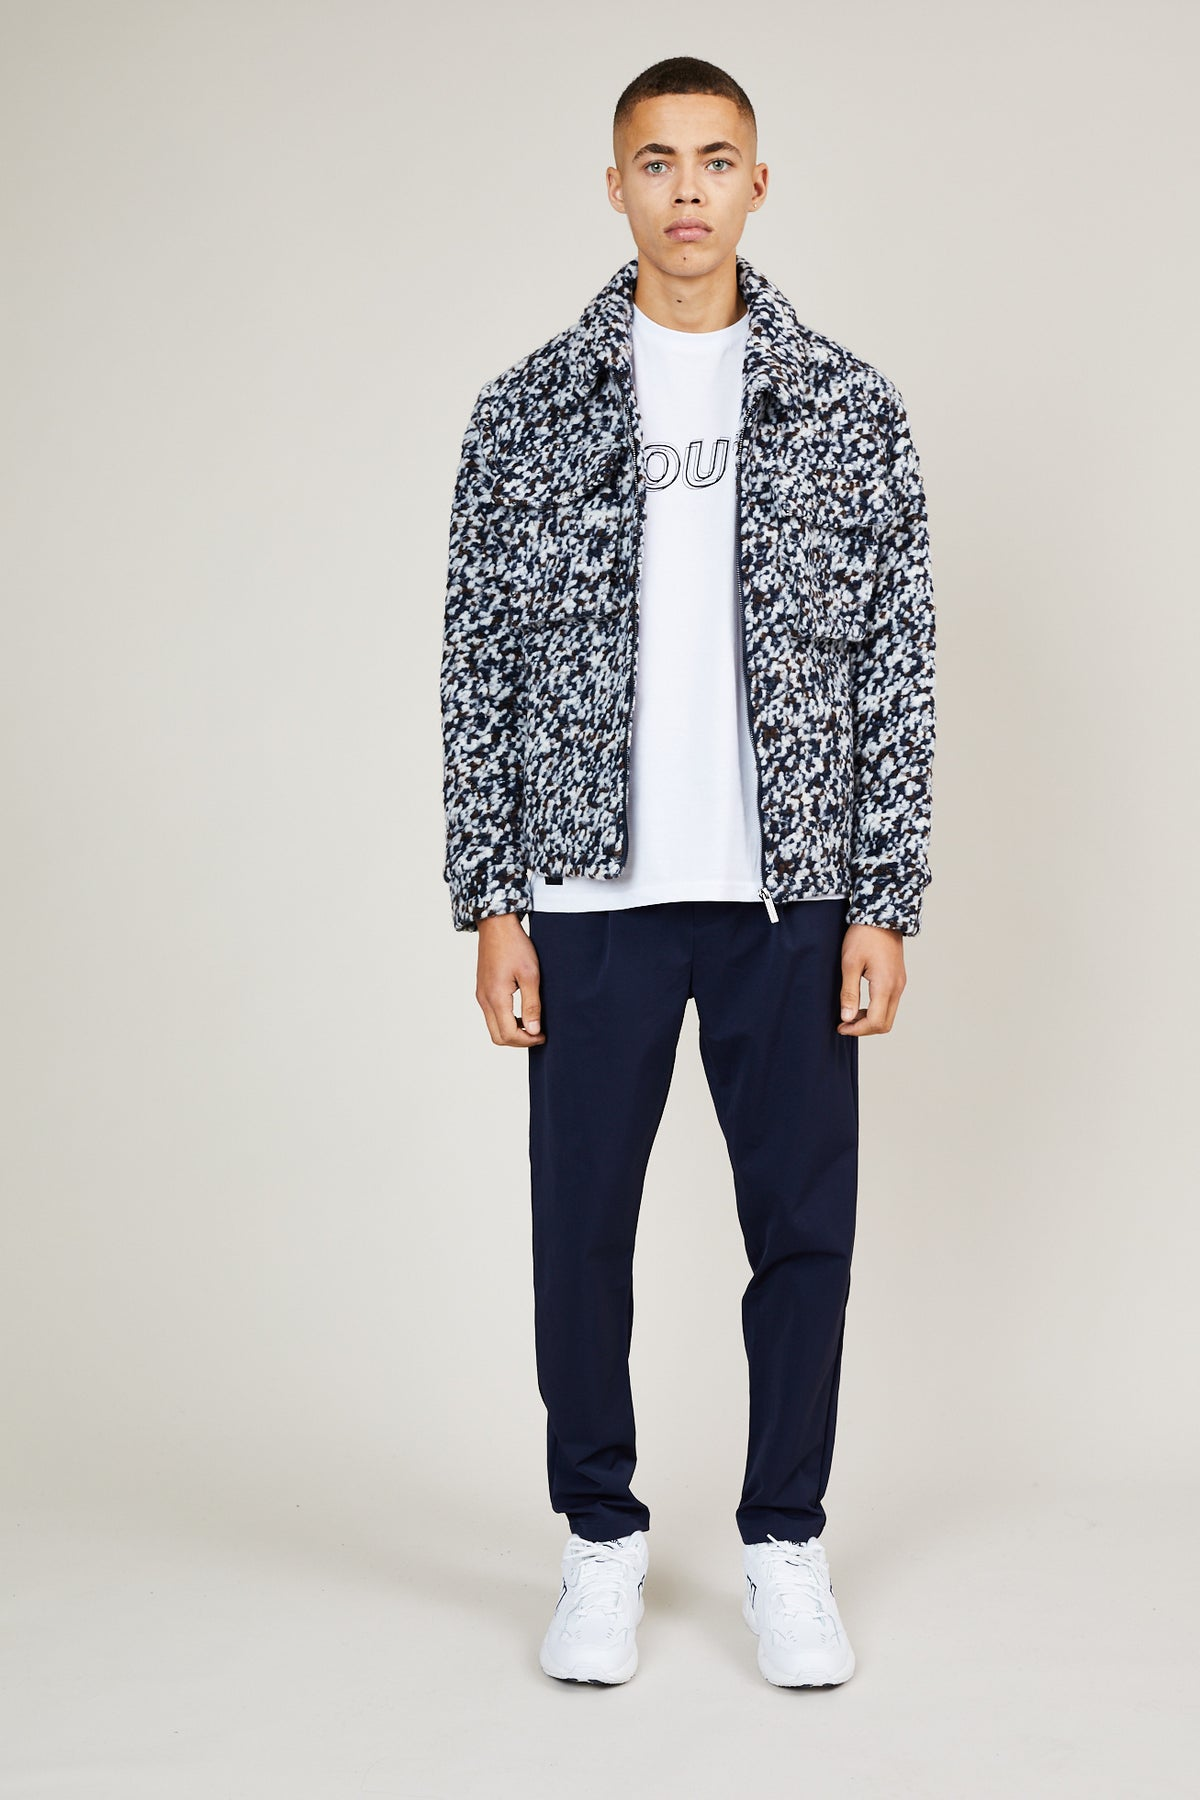 CARRARA JACKET